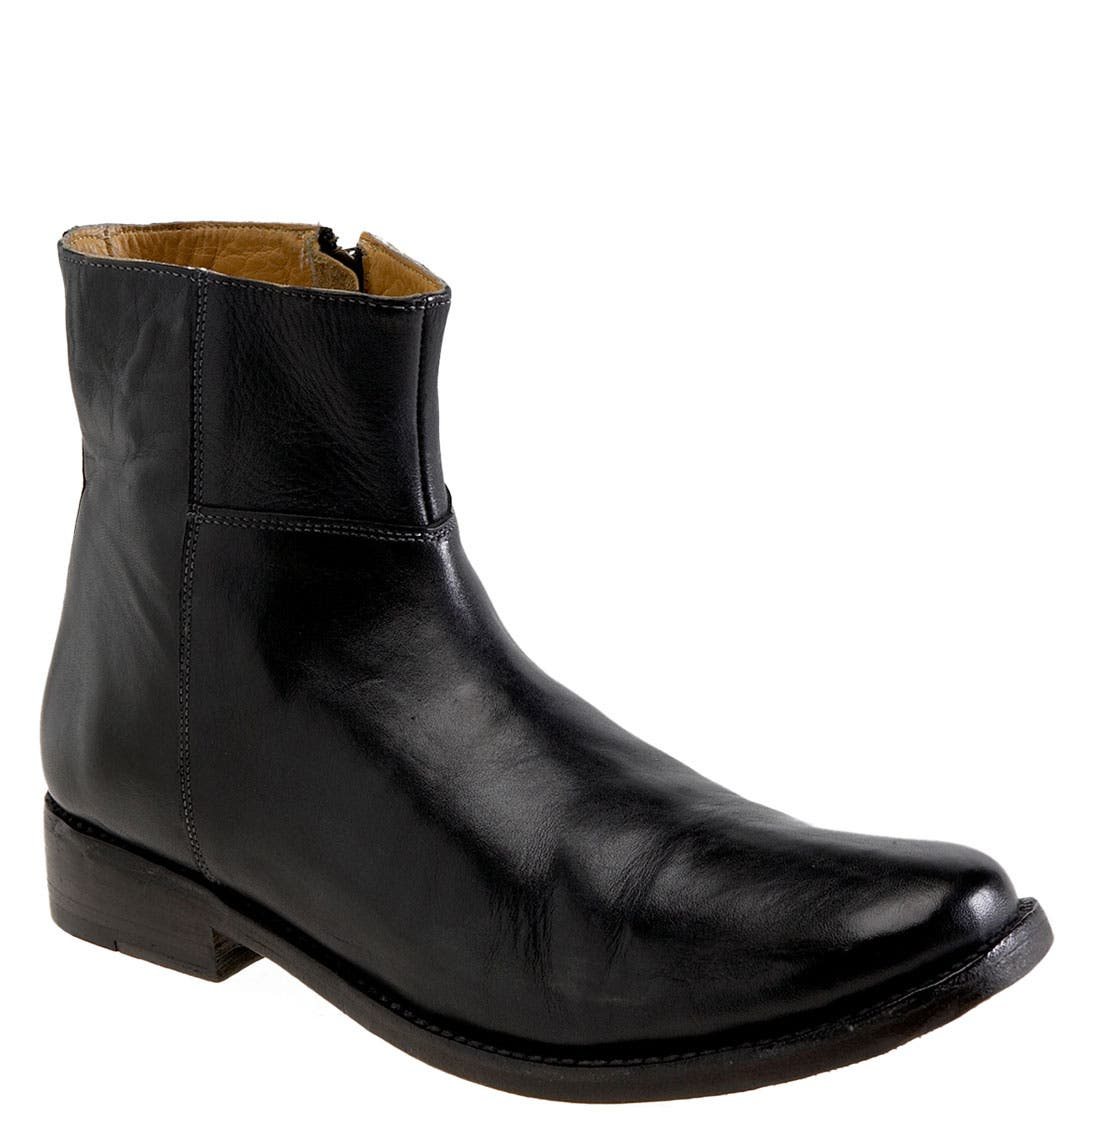 Alternate Image 1 Selected - Bed Stu 'Capricorn' Boot (Online Only)